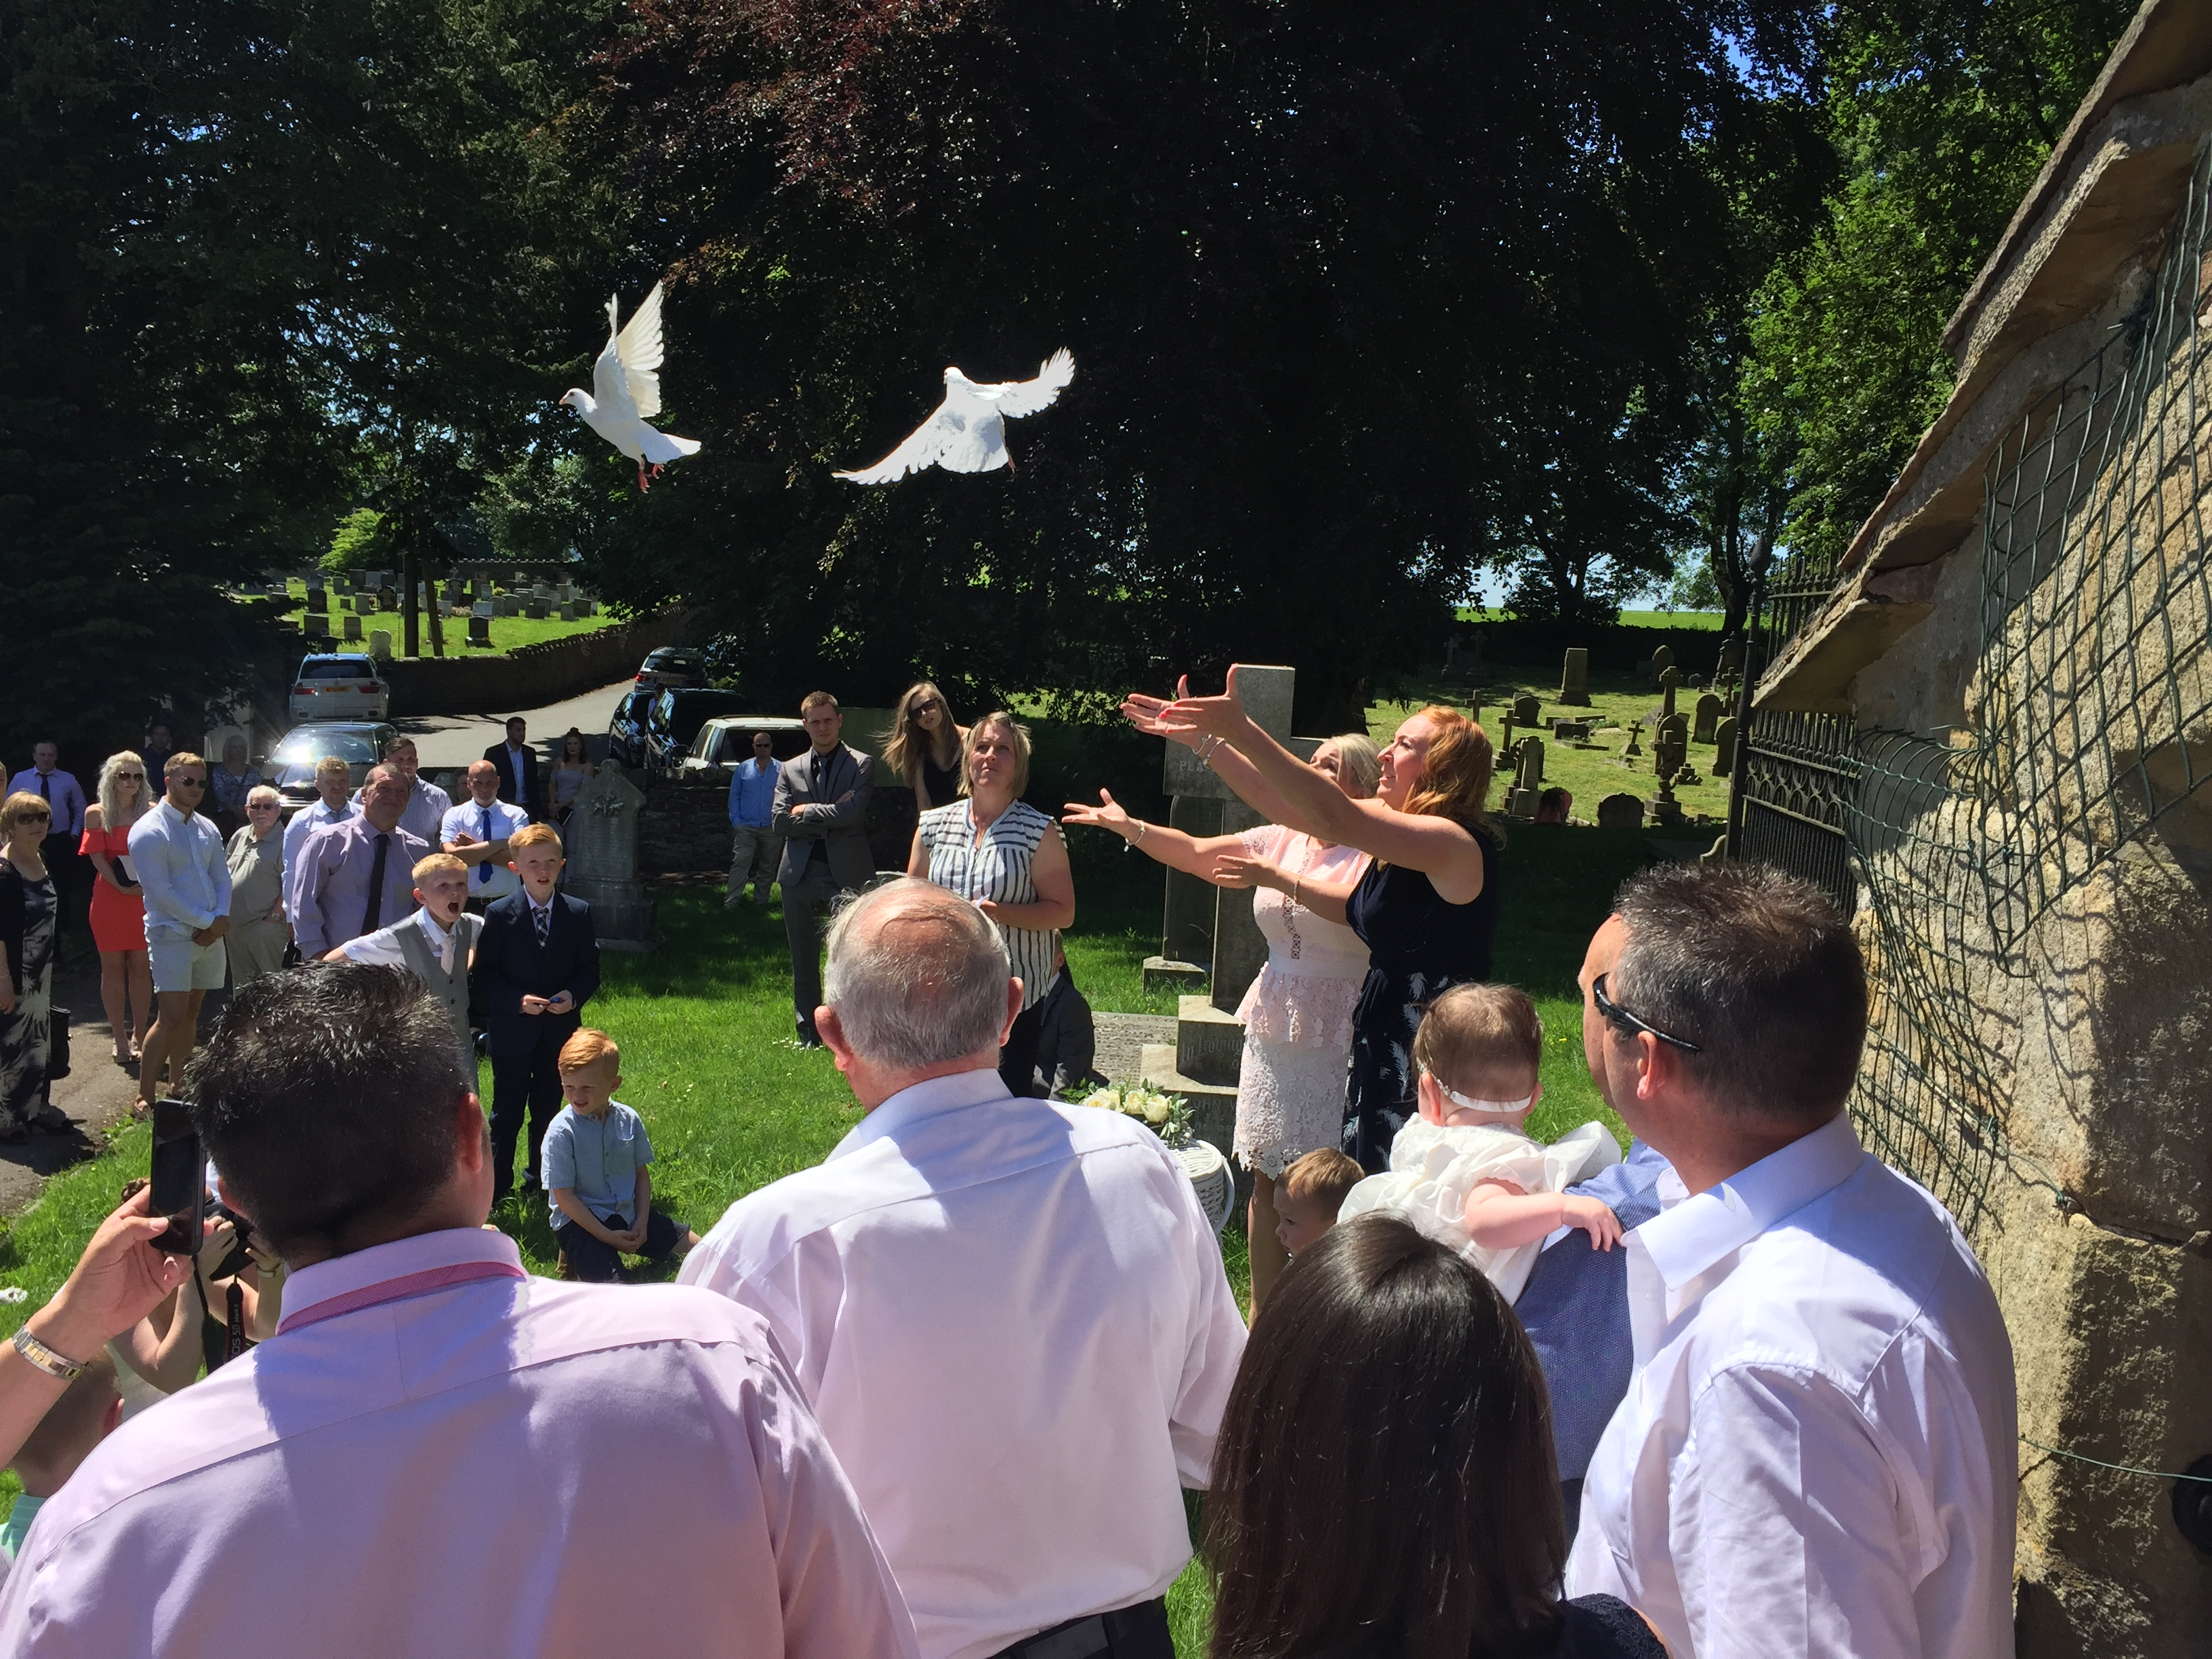 Baptism doves for peace and hope